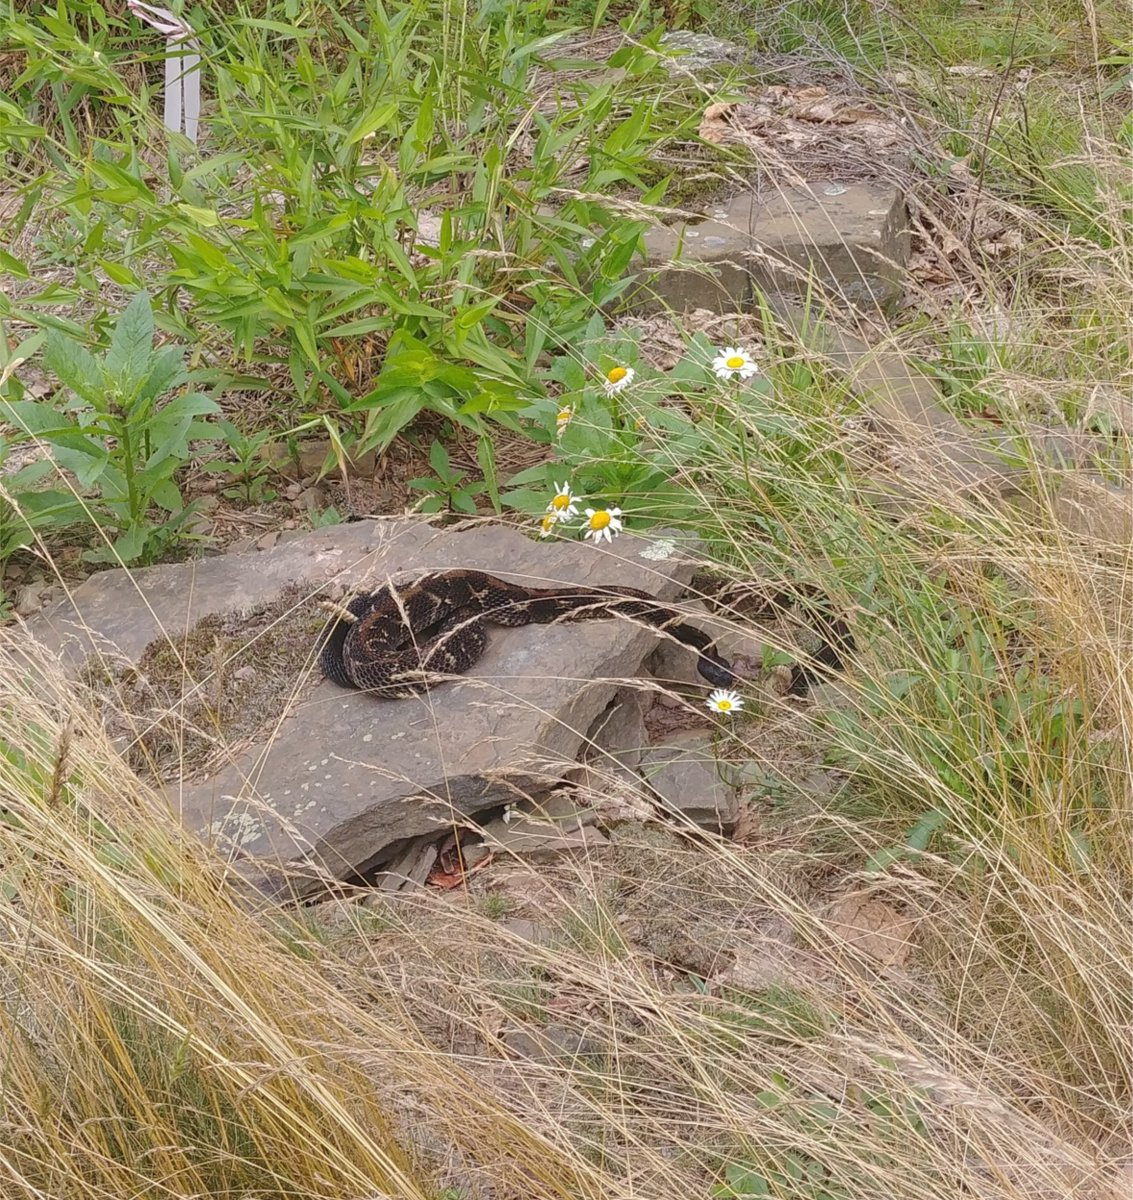 Step off buddy.  This is my Sunday afternoon relaxing rock! #rattlesnake #snake<br>http://pic.twitter.com/OoRlo549Yl